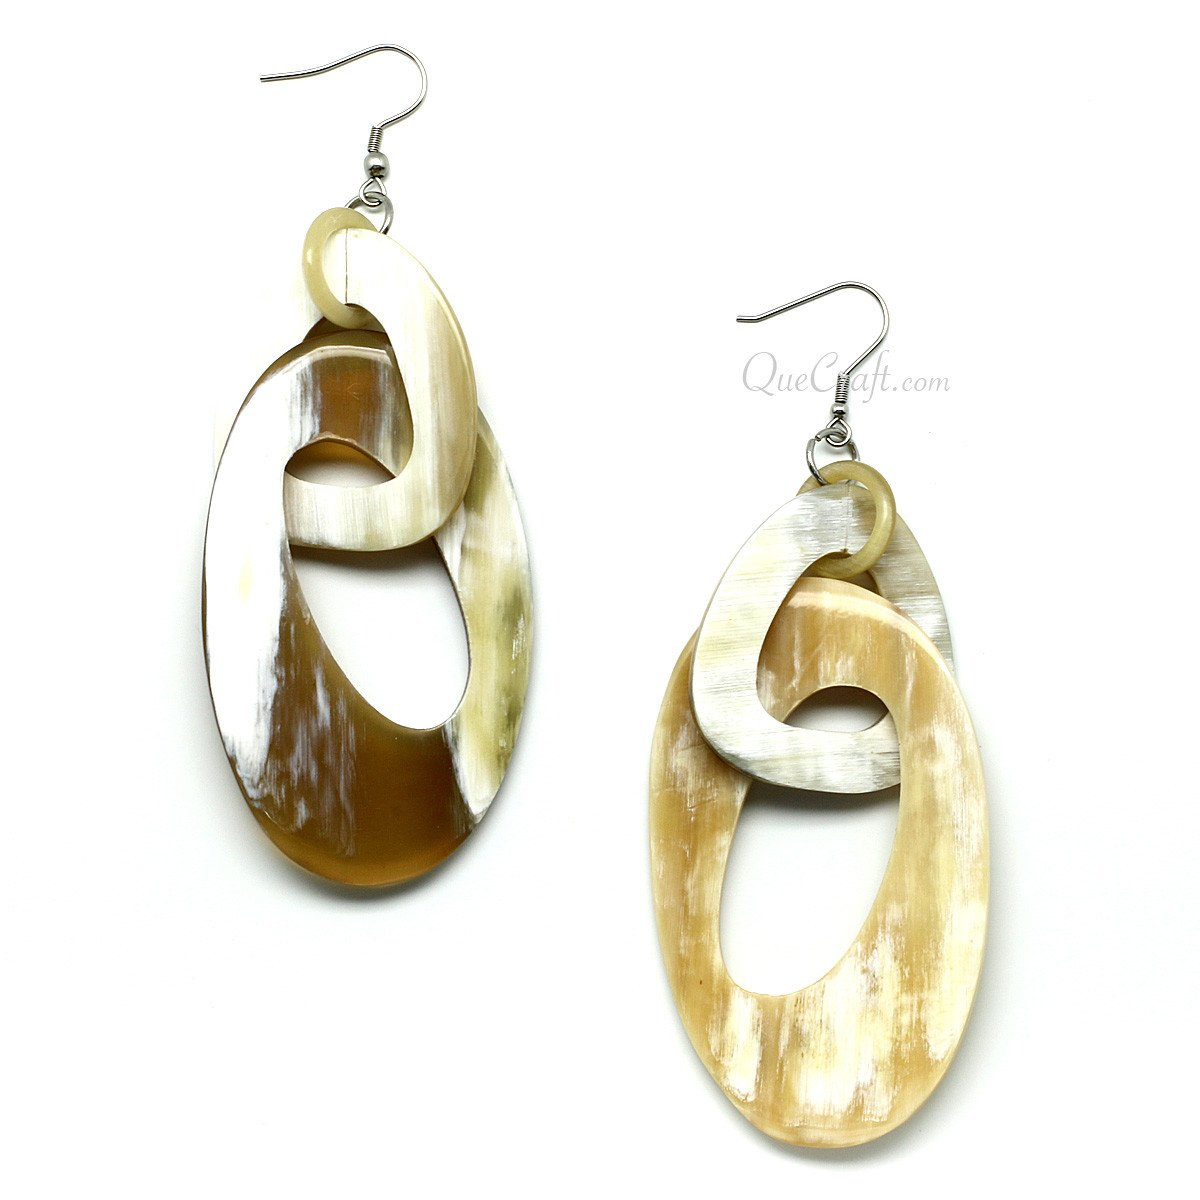 Horn Earrings #11541 - HORN.JEWELRY